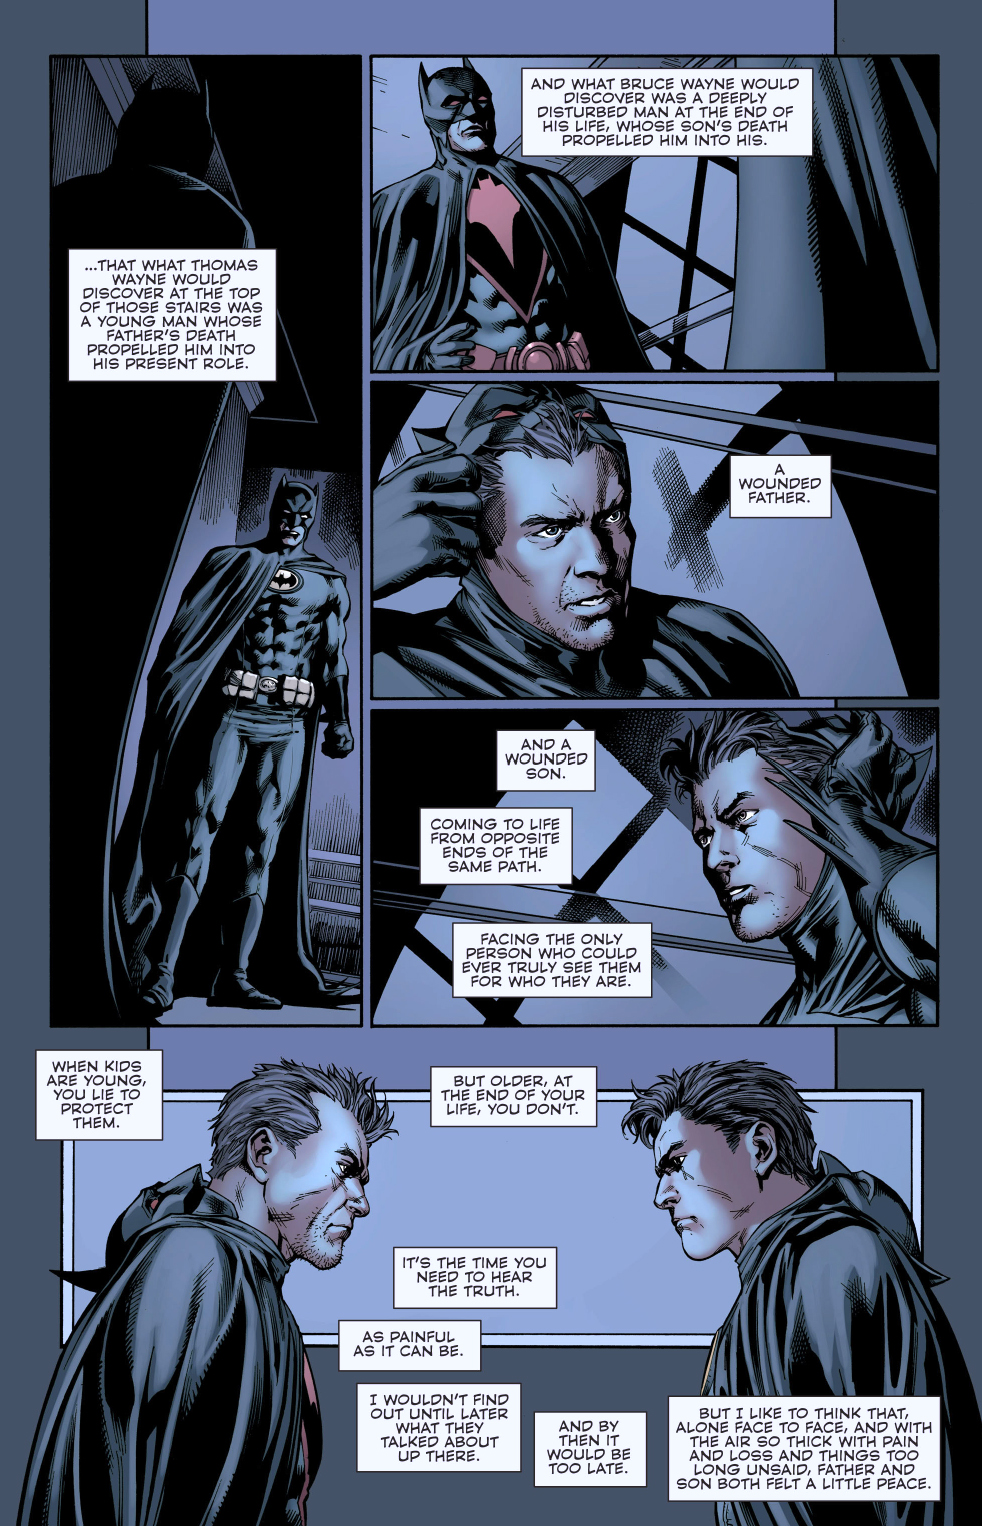 https://comicnewbies.files.wordpress.com/2015/04/thomas-wayne-batman-meets-bruce-wayne-batman-2.jpg